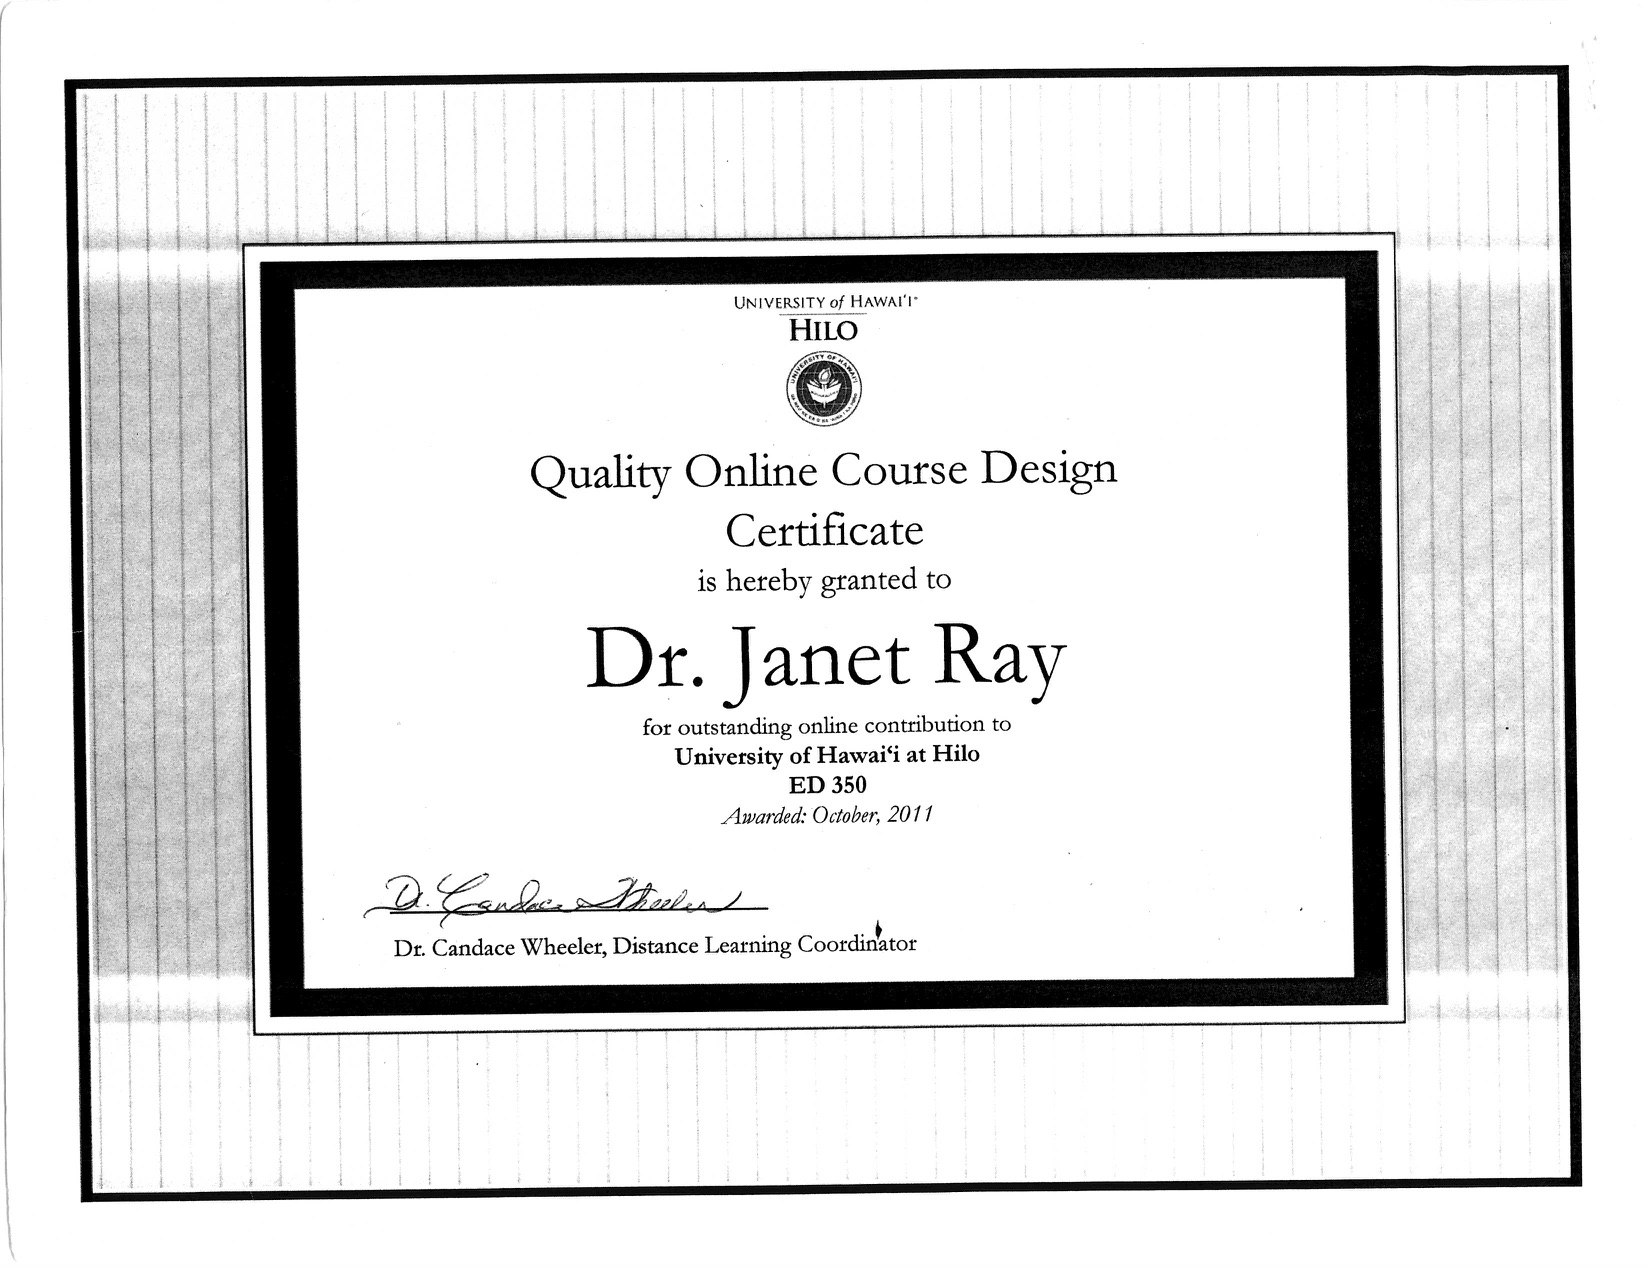 Quality Online Course Design Certificate, awarded to Jan Ray